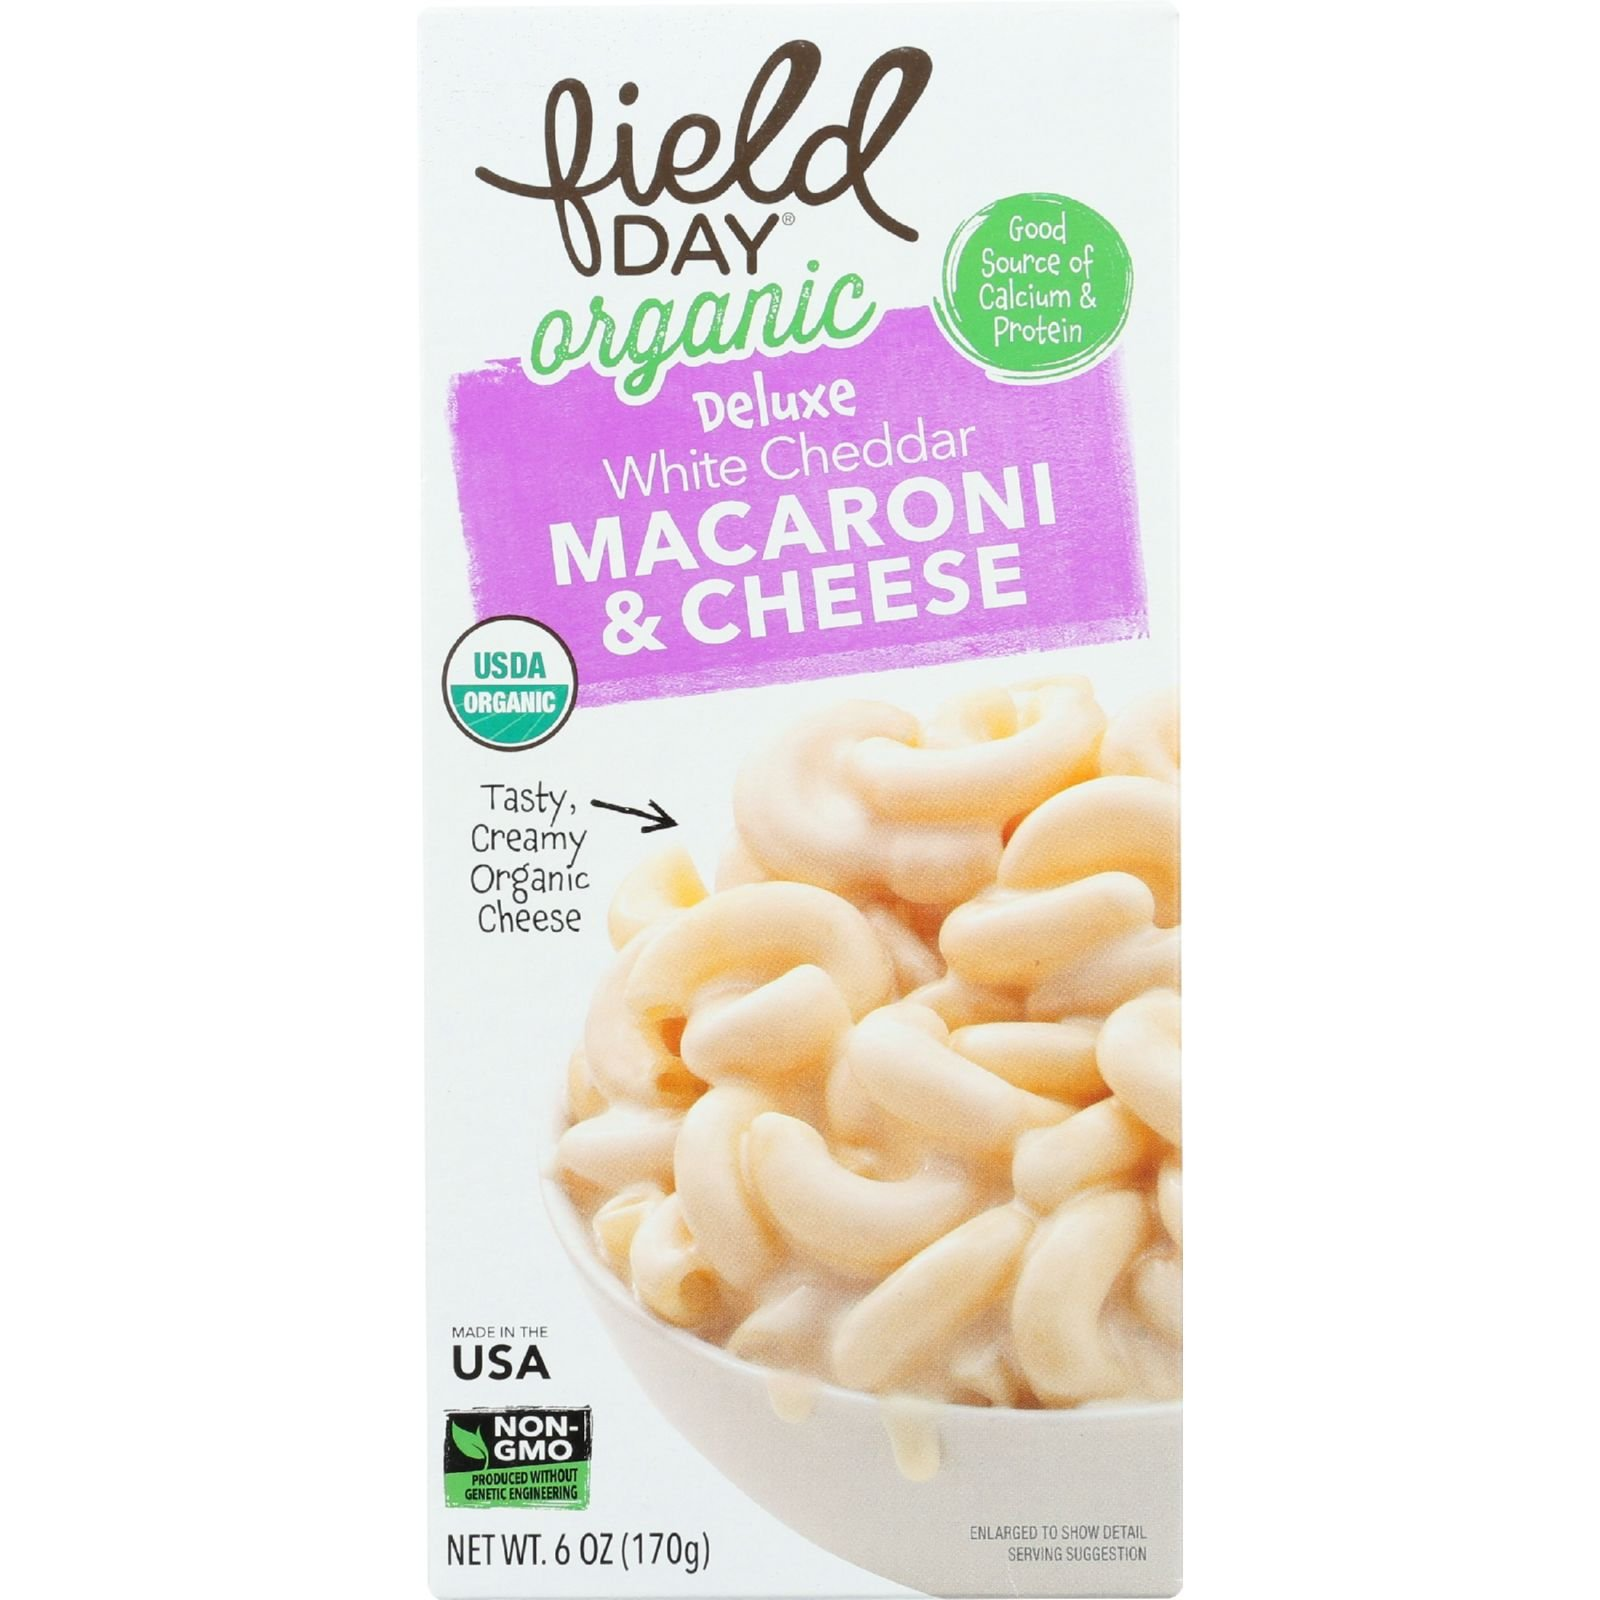 Field Day Macaroni and Cheese Organic Deluxe White Cheddar, 6 Ounce, 12 Count